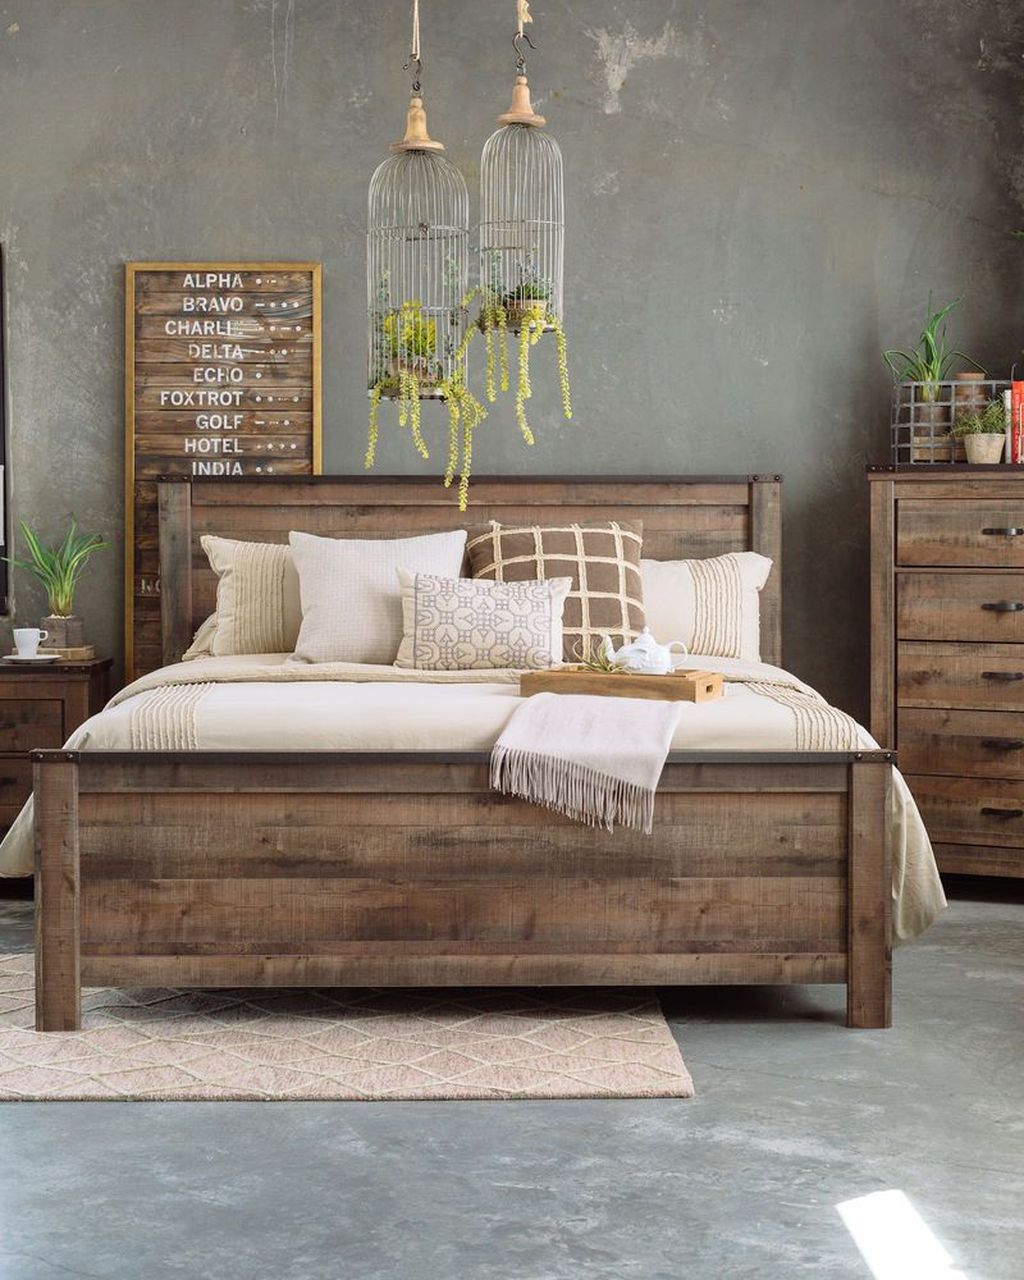 42 Romantic Rustic Farmhouse Bedroom Design And Decorations Ideas Homishome